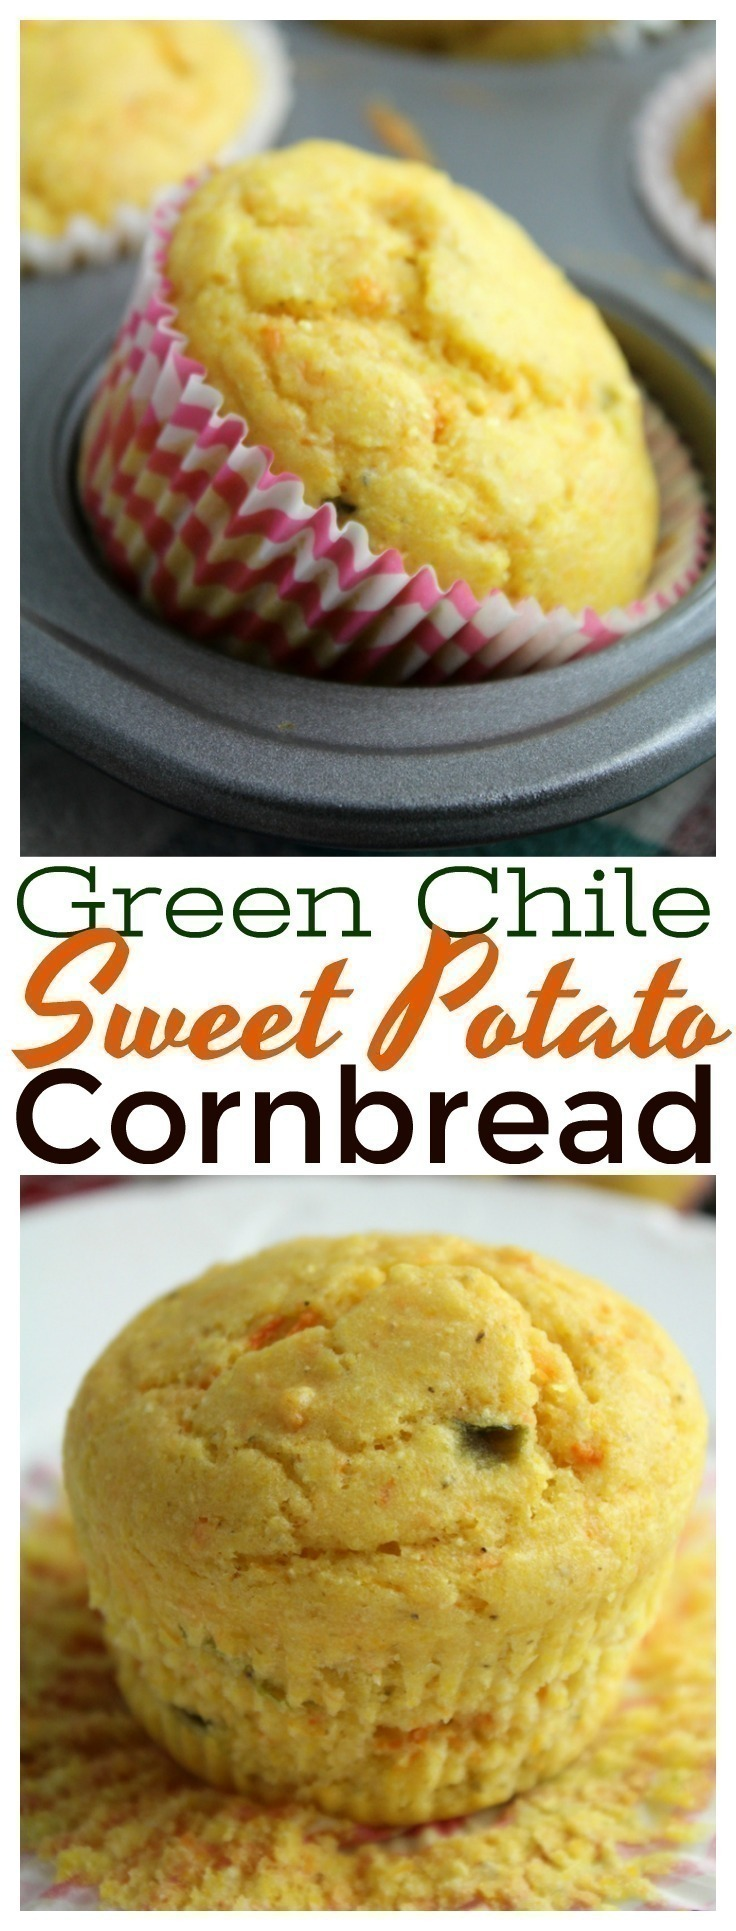 Mashed sweet potato, Hatch green chiles, sour cream, and spices make this incredible kicked up Green Chile Sweet Potato Cornbread that everyone will rave about!  Serve with a pat of butter or honey.